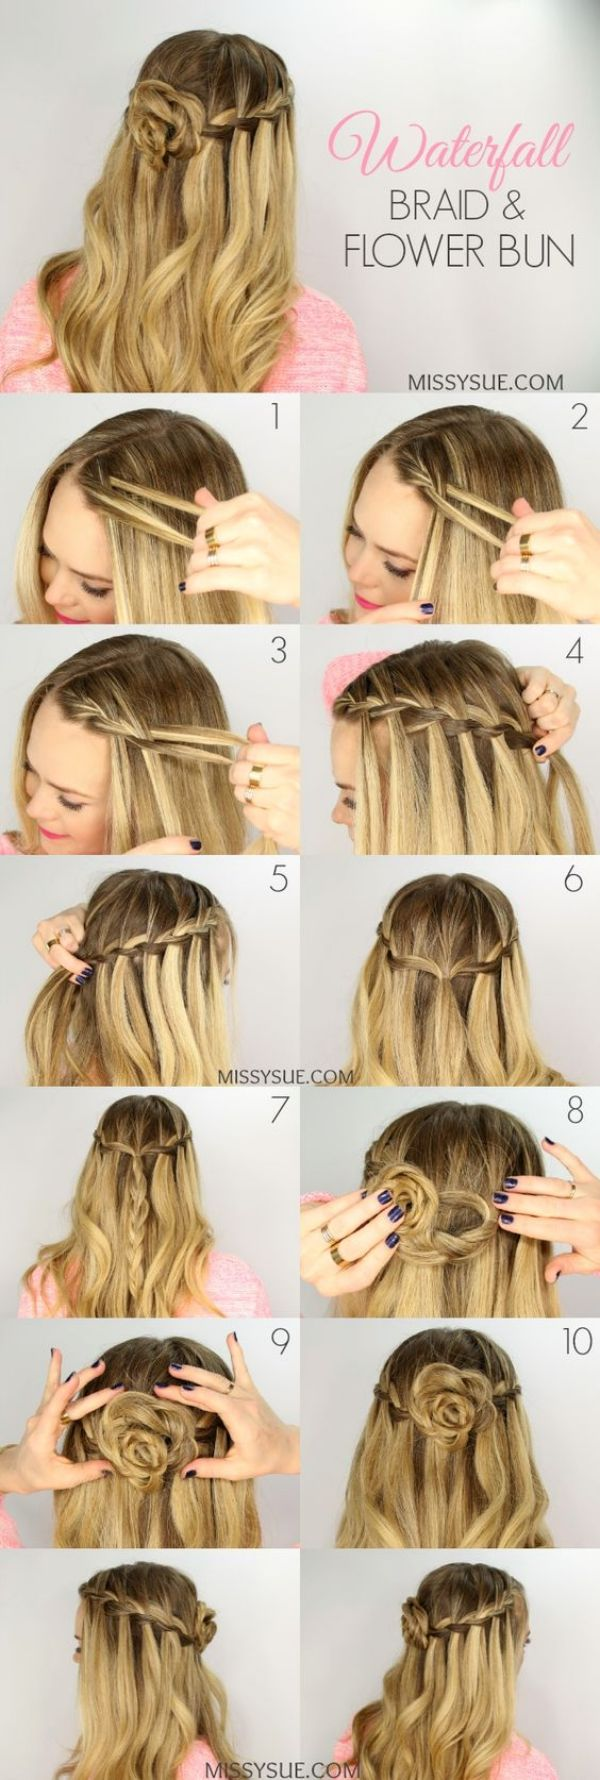 5 Braid Hairstyles To Try This Summer With Tutorial A Harry For